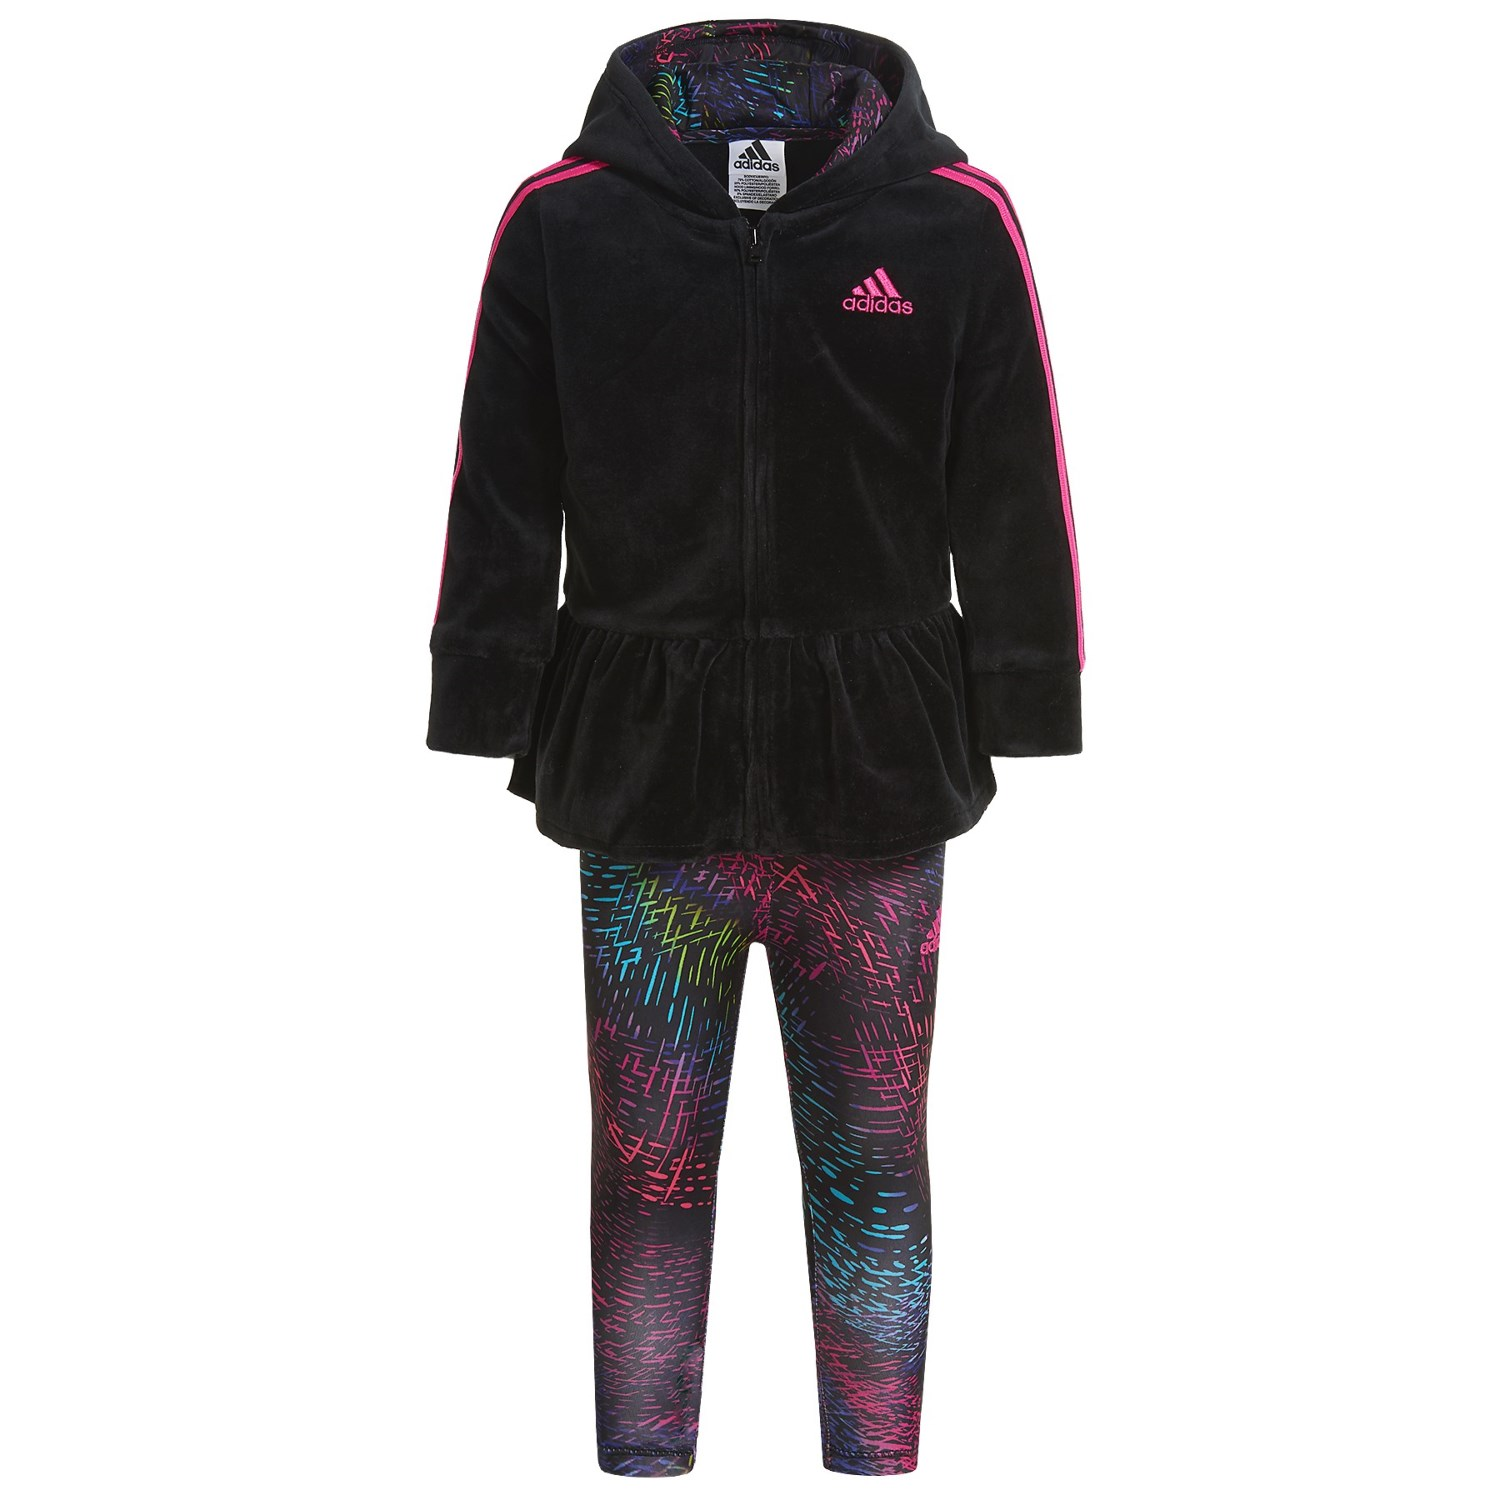 adidas Velour Hoodie and Leggings Set (For Infants)